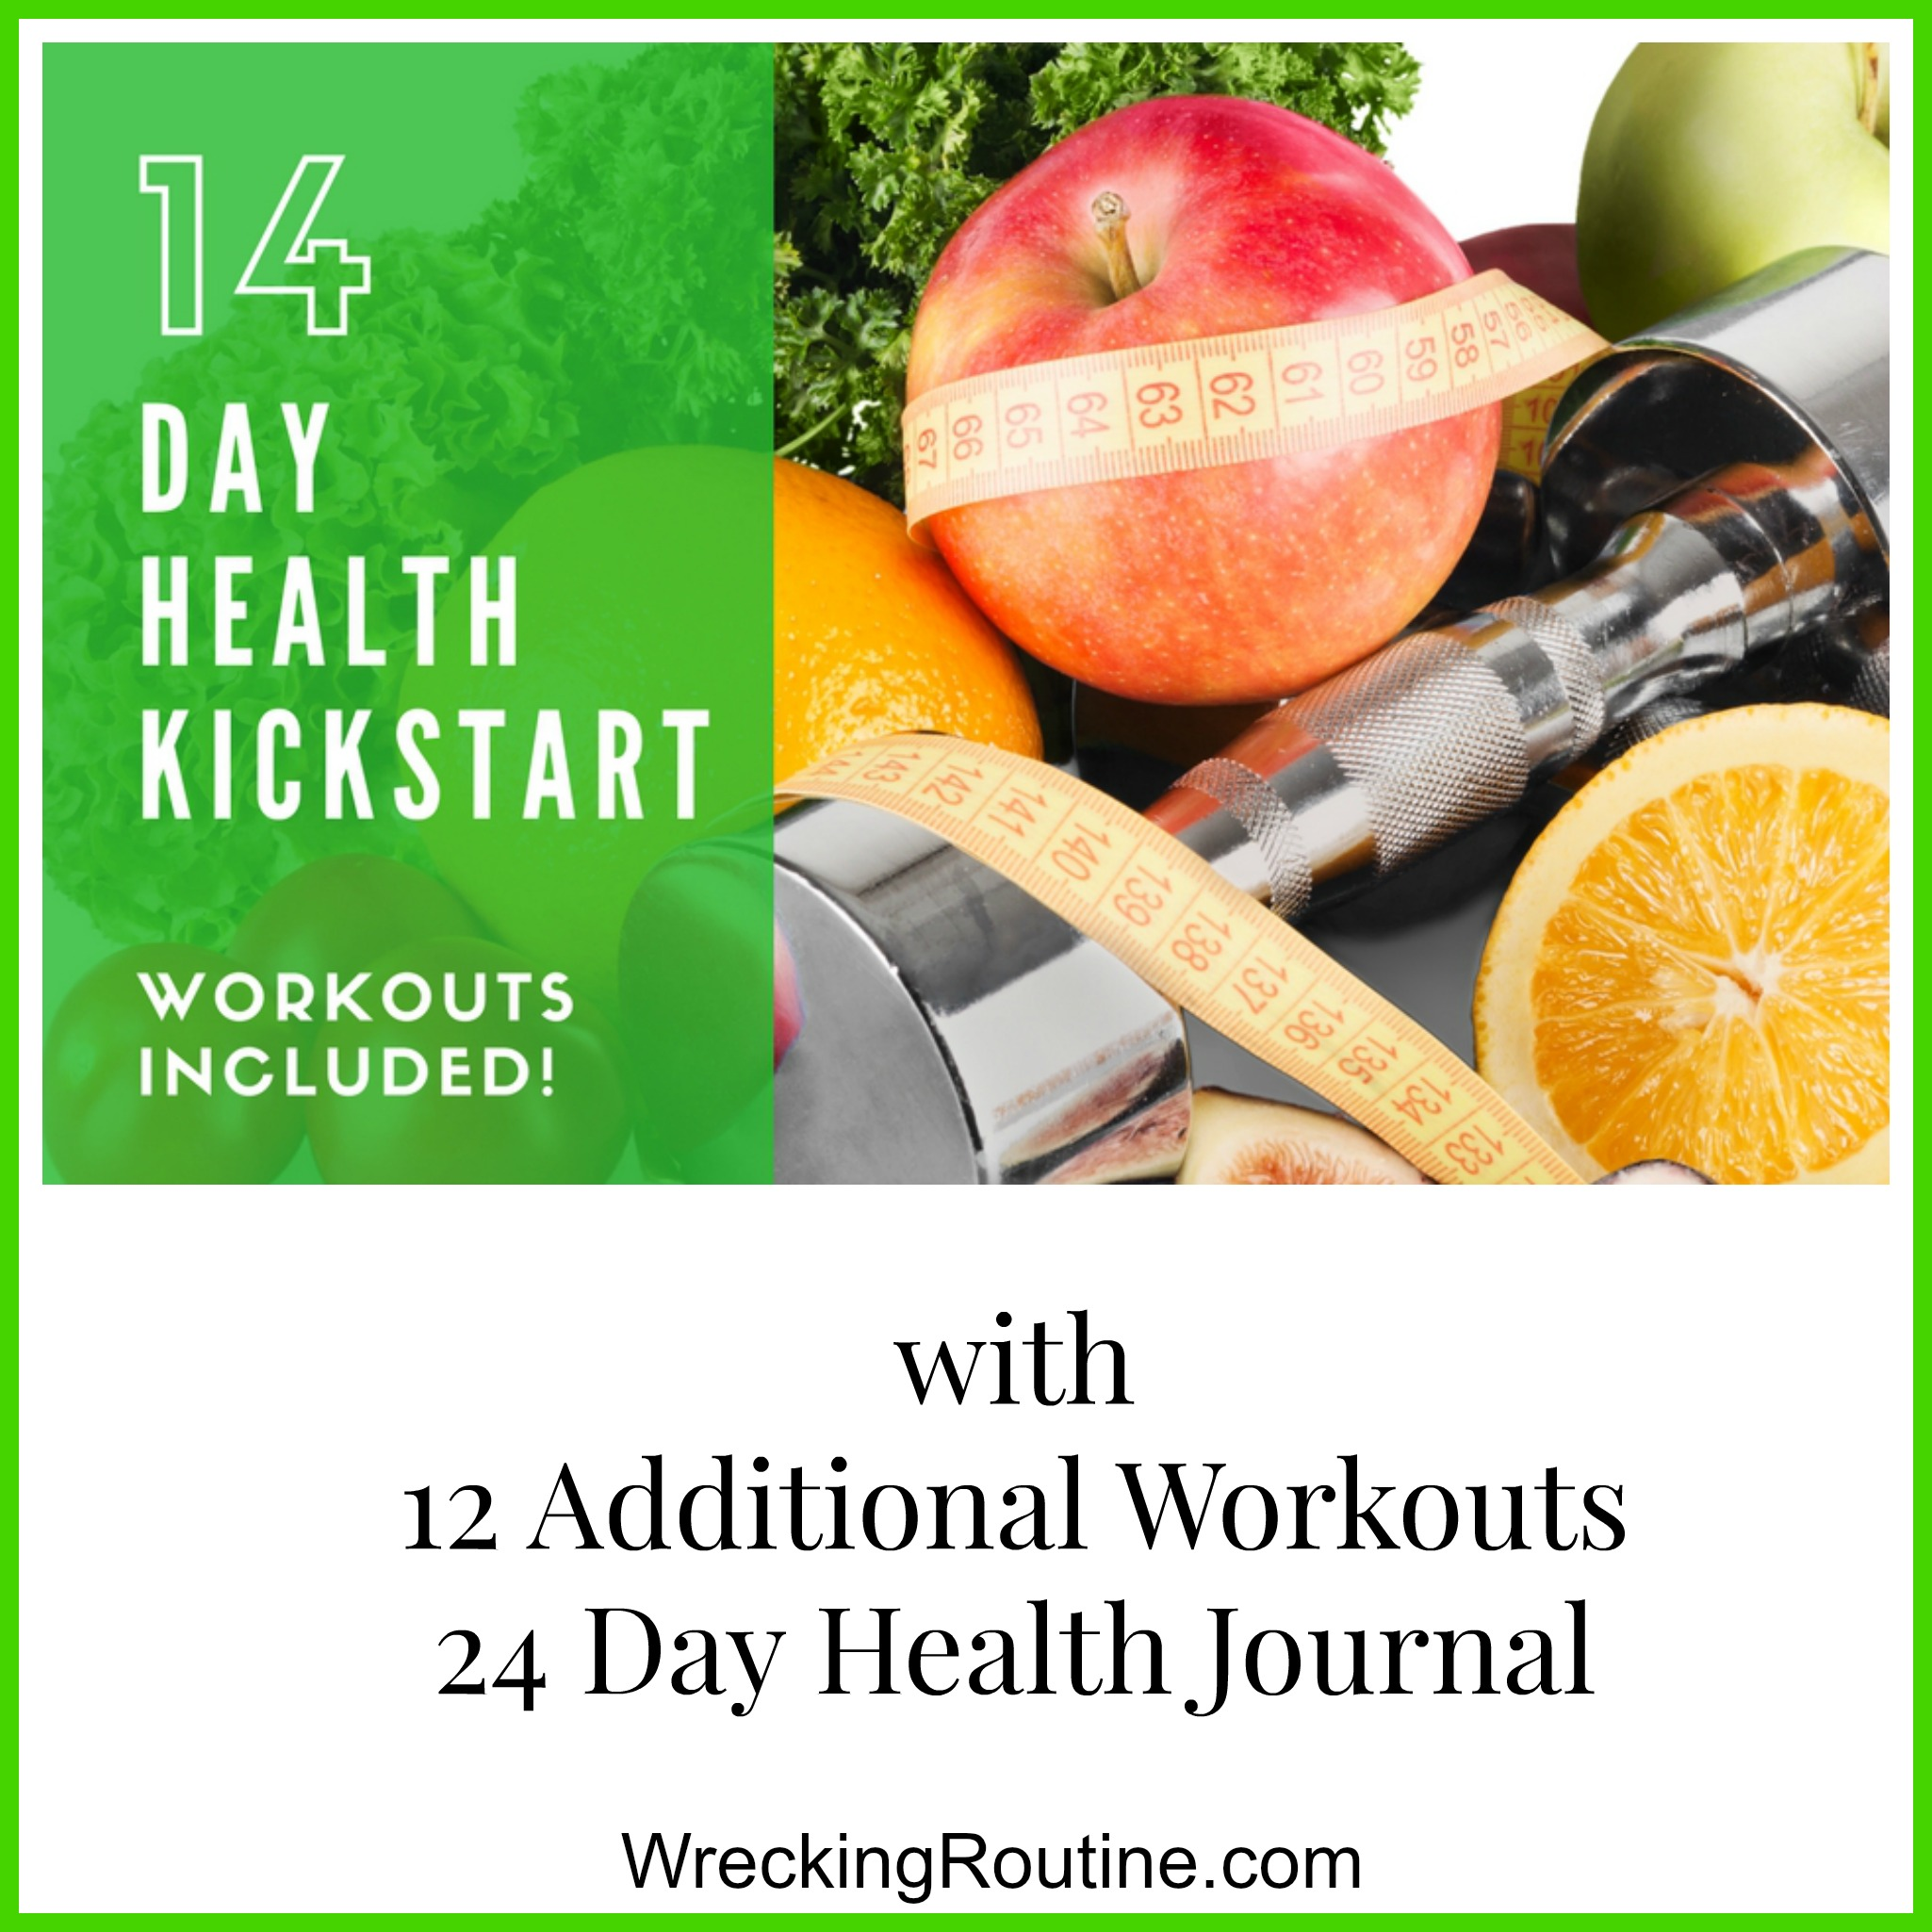 14 Day Health Journal